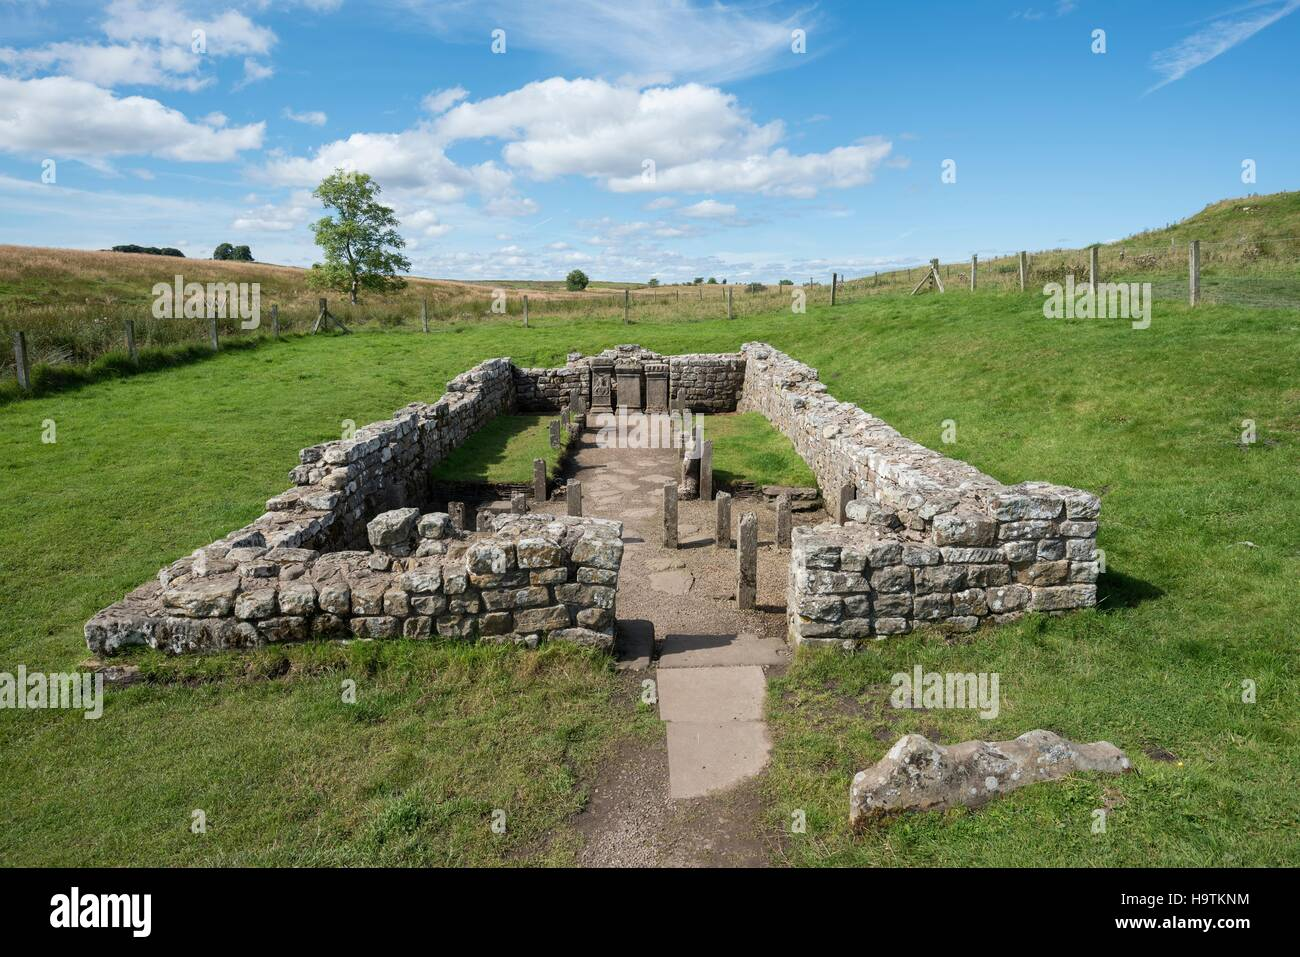 Temple of Mithras from 3rd century, Hadrian's Wall, Carrawburgh, Northumberland, England, United Kingdom - Stock Image